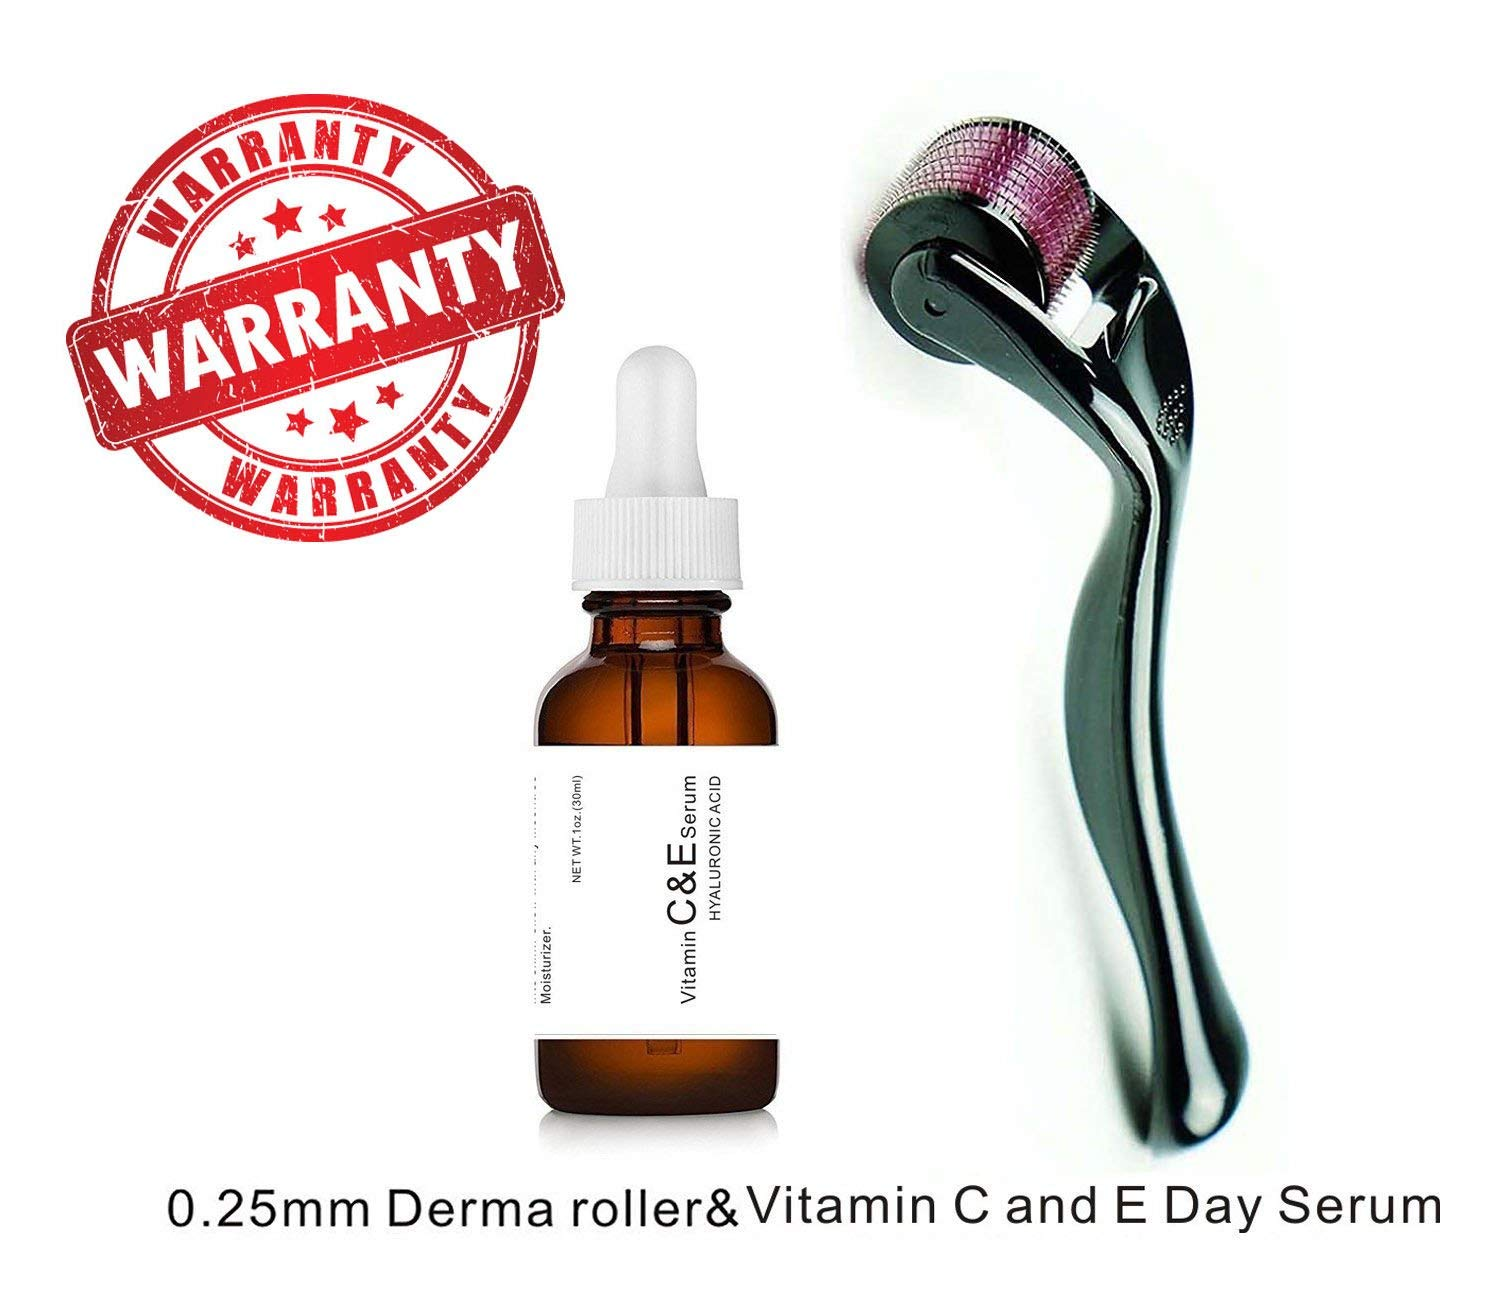 Sweet Dream Vitamin C and E Day Serum with Hyaluronic Acid,Anti aging skin care product/anti wrinkle serum will fill fine lines,even skin tone and fade age spots-plus 0.25mm derma roller